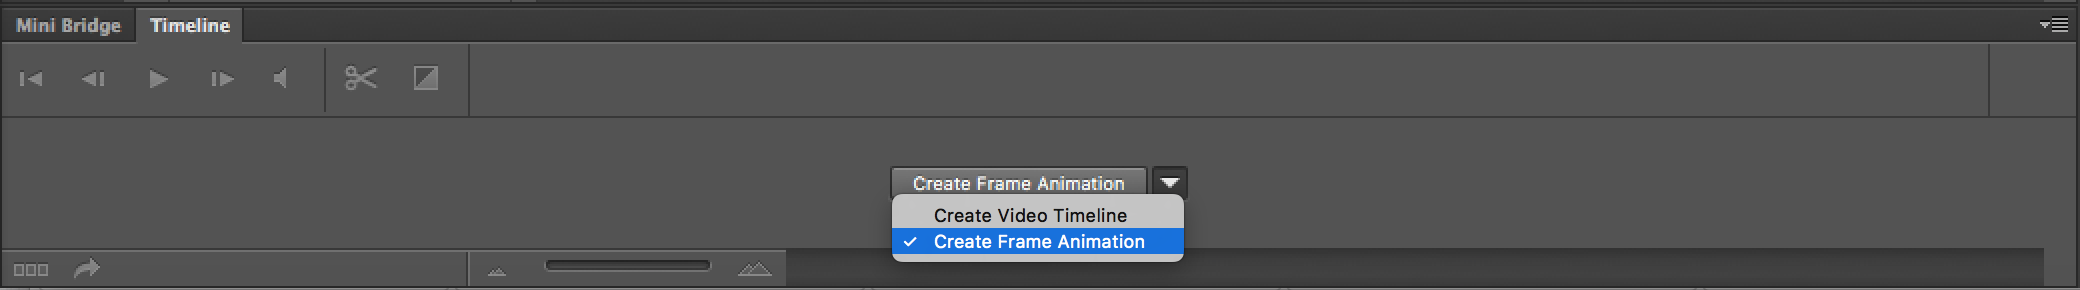 howtocreateanimationsforinstagram5.png